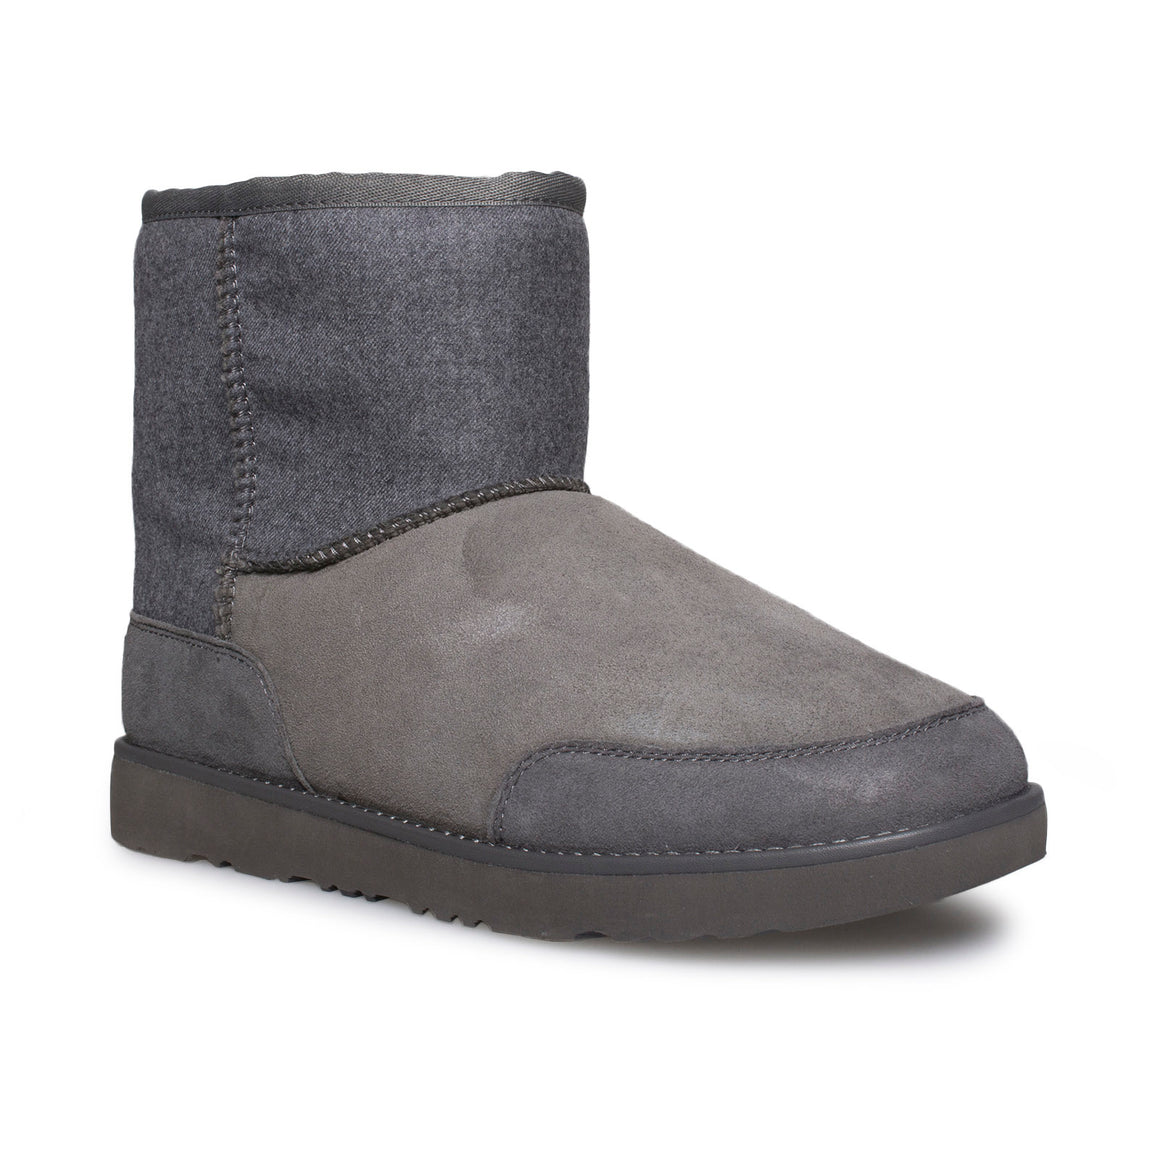 UGG Classic Mini Phillip Lim Flannel Grey Boots